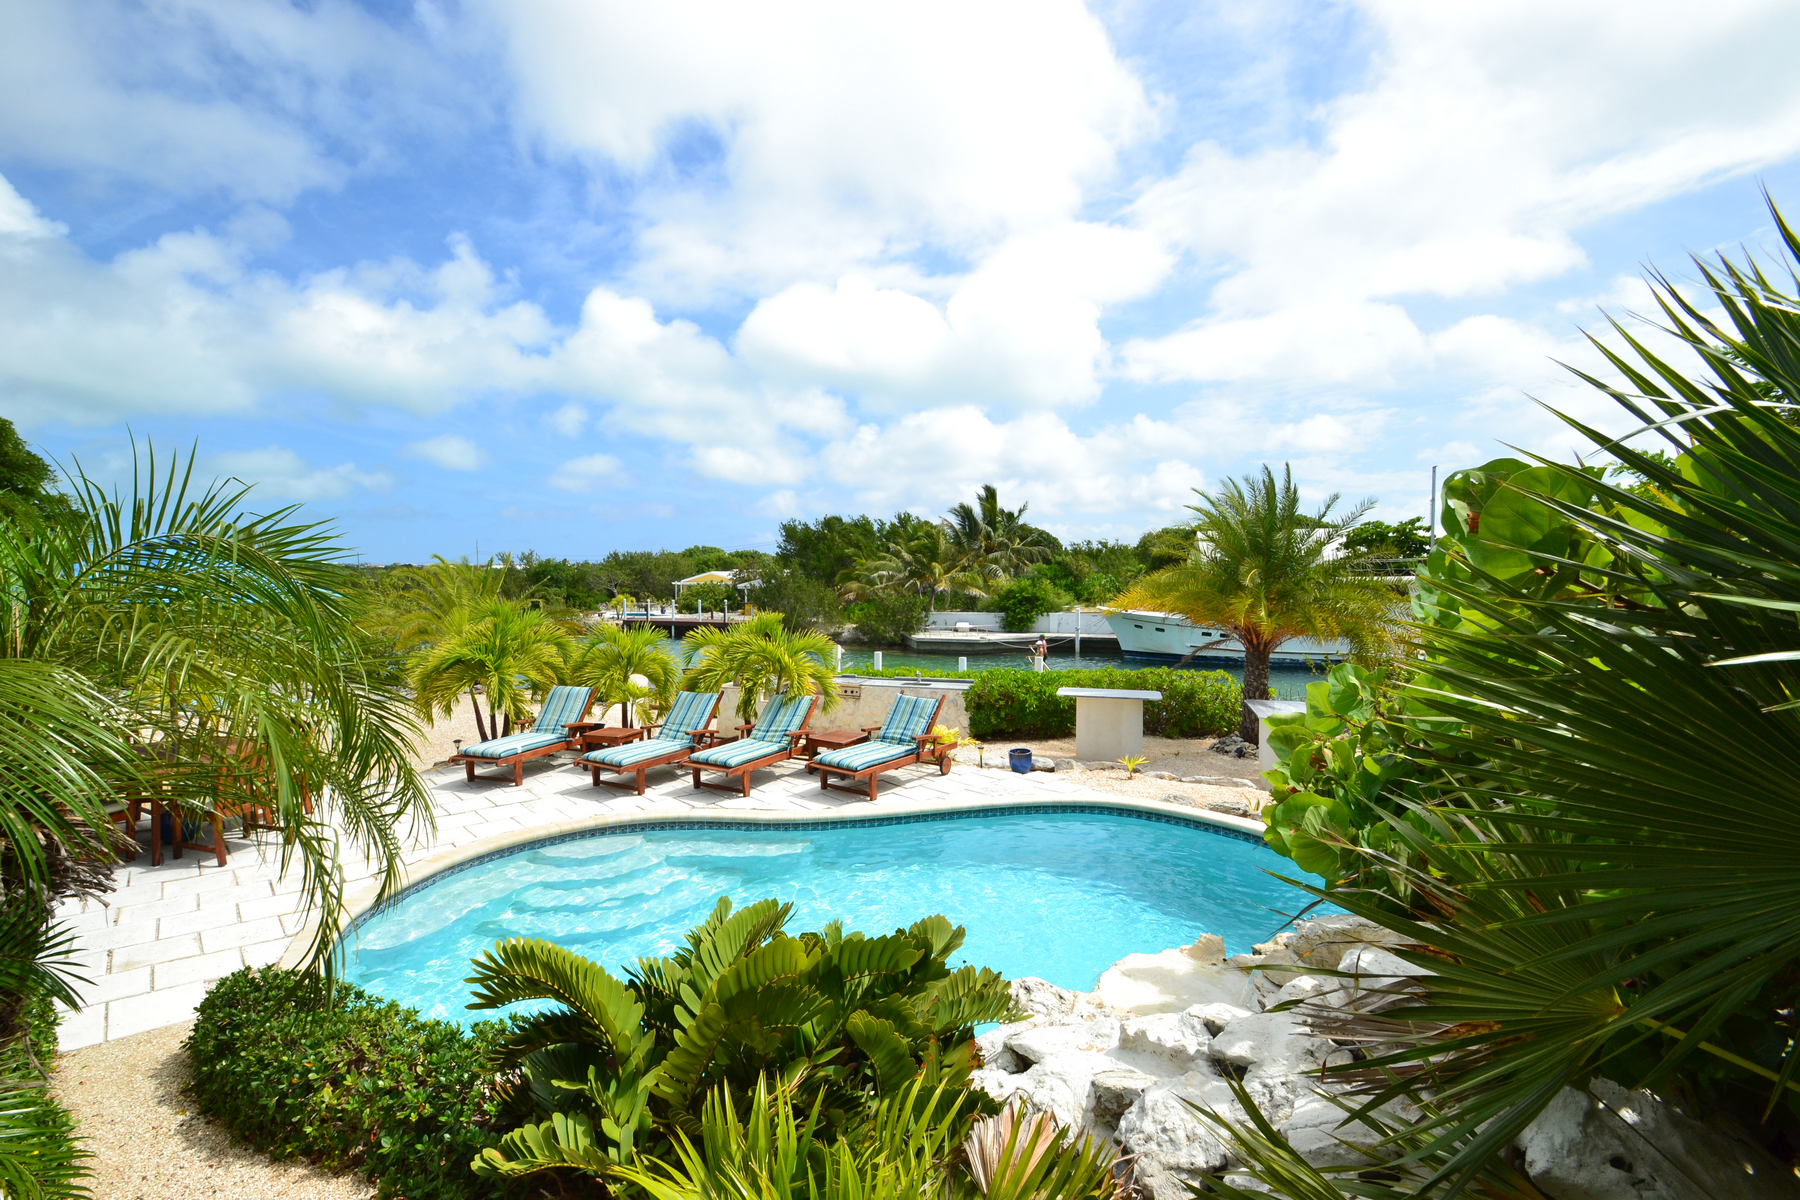 Single Family Home for Sale at Discovery Bay Canalfront Discovery Bay Villa, Canalfront Discovery Bay, Providenciales TC Turks And Caicos Islands